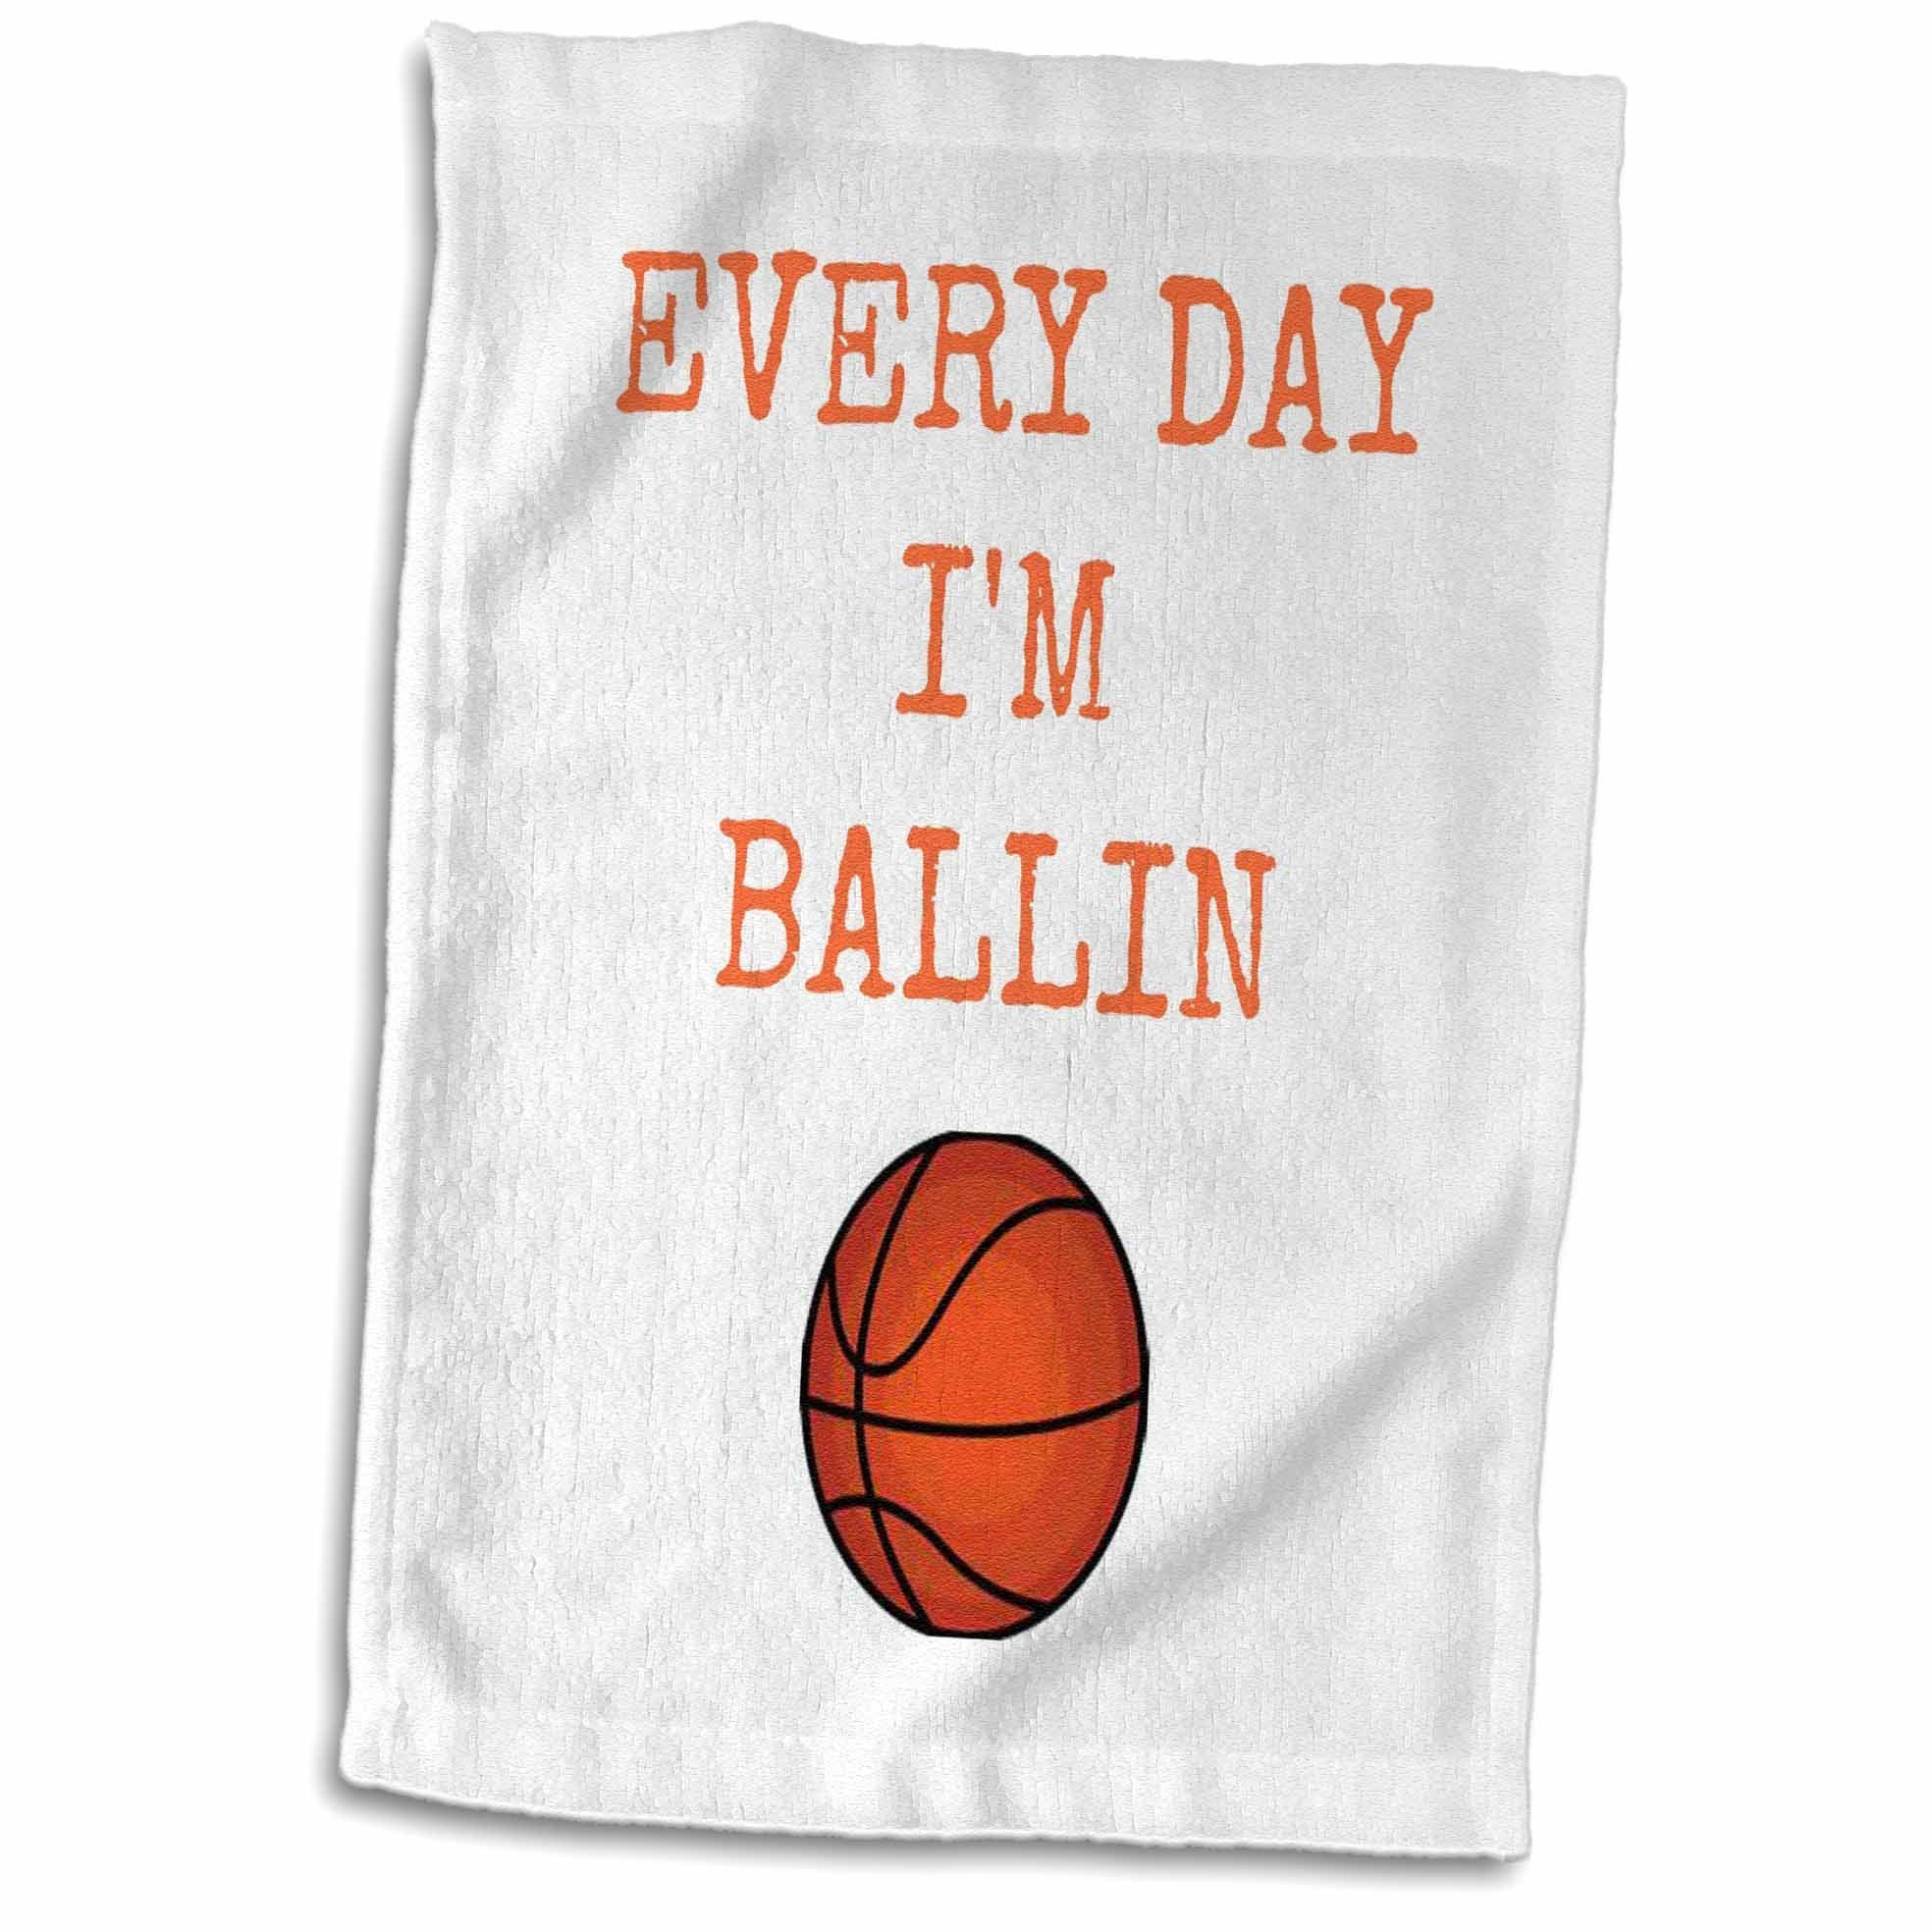 3D Rose Every Day Im Ballin Basketball Picture Orange Lettering twl_172351_1 Towel, 15'' x 22'', Multicolor